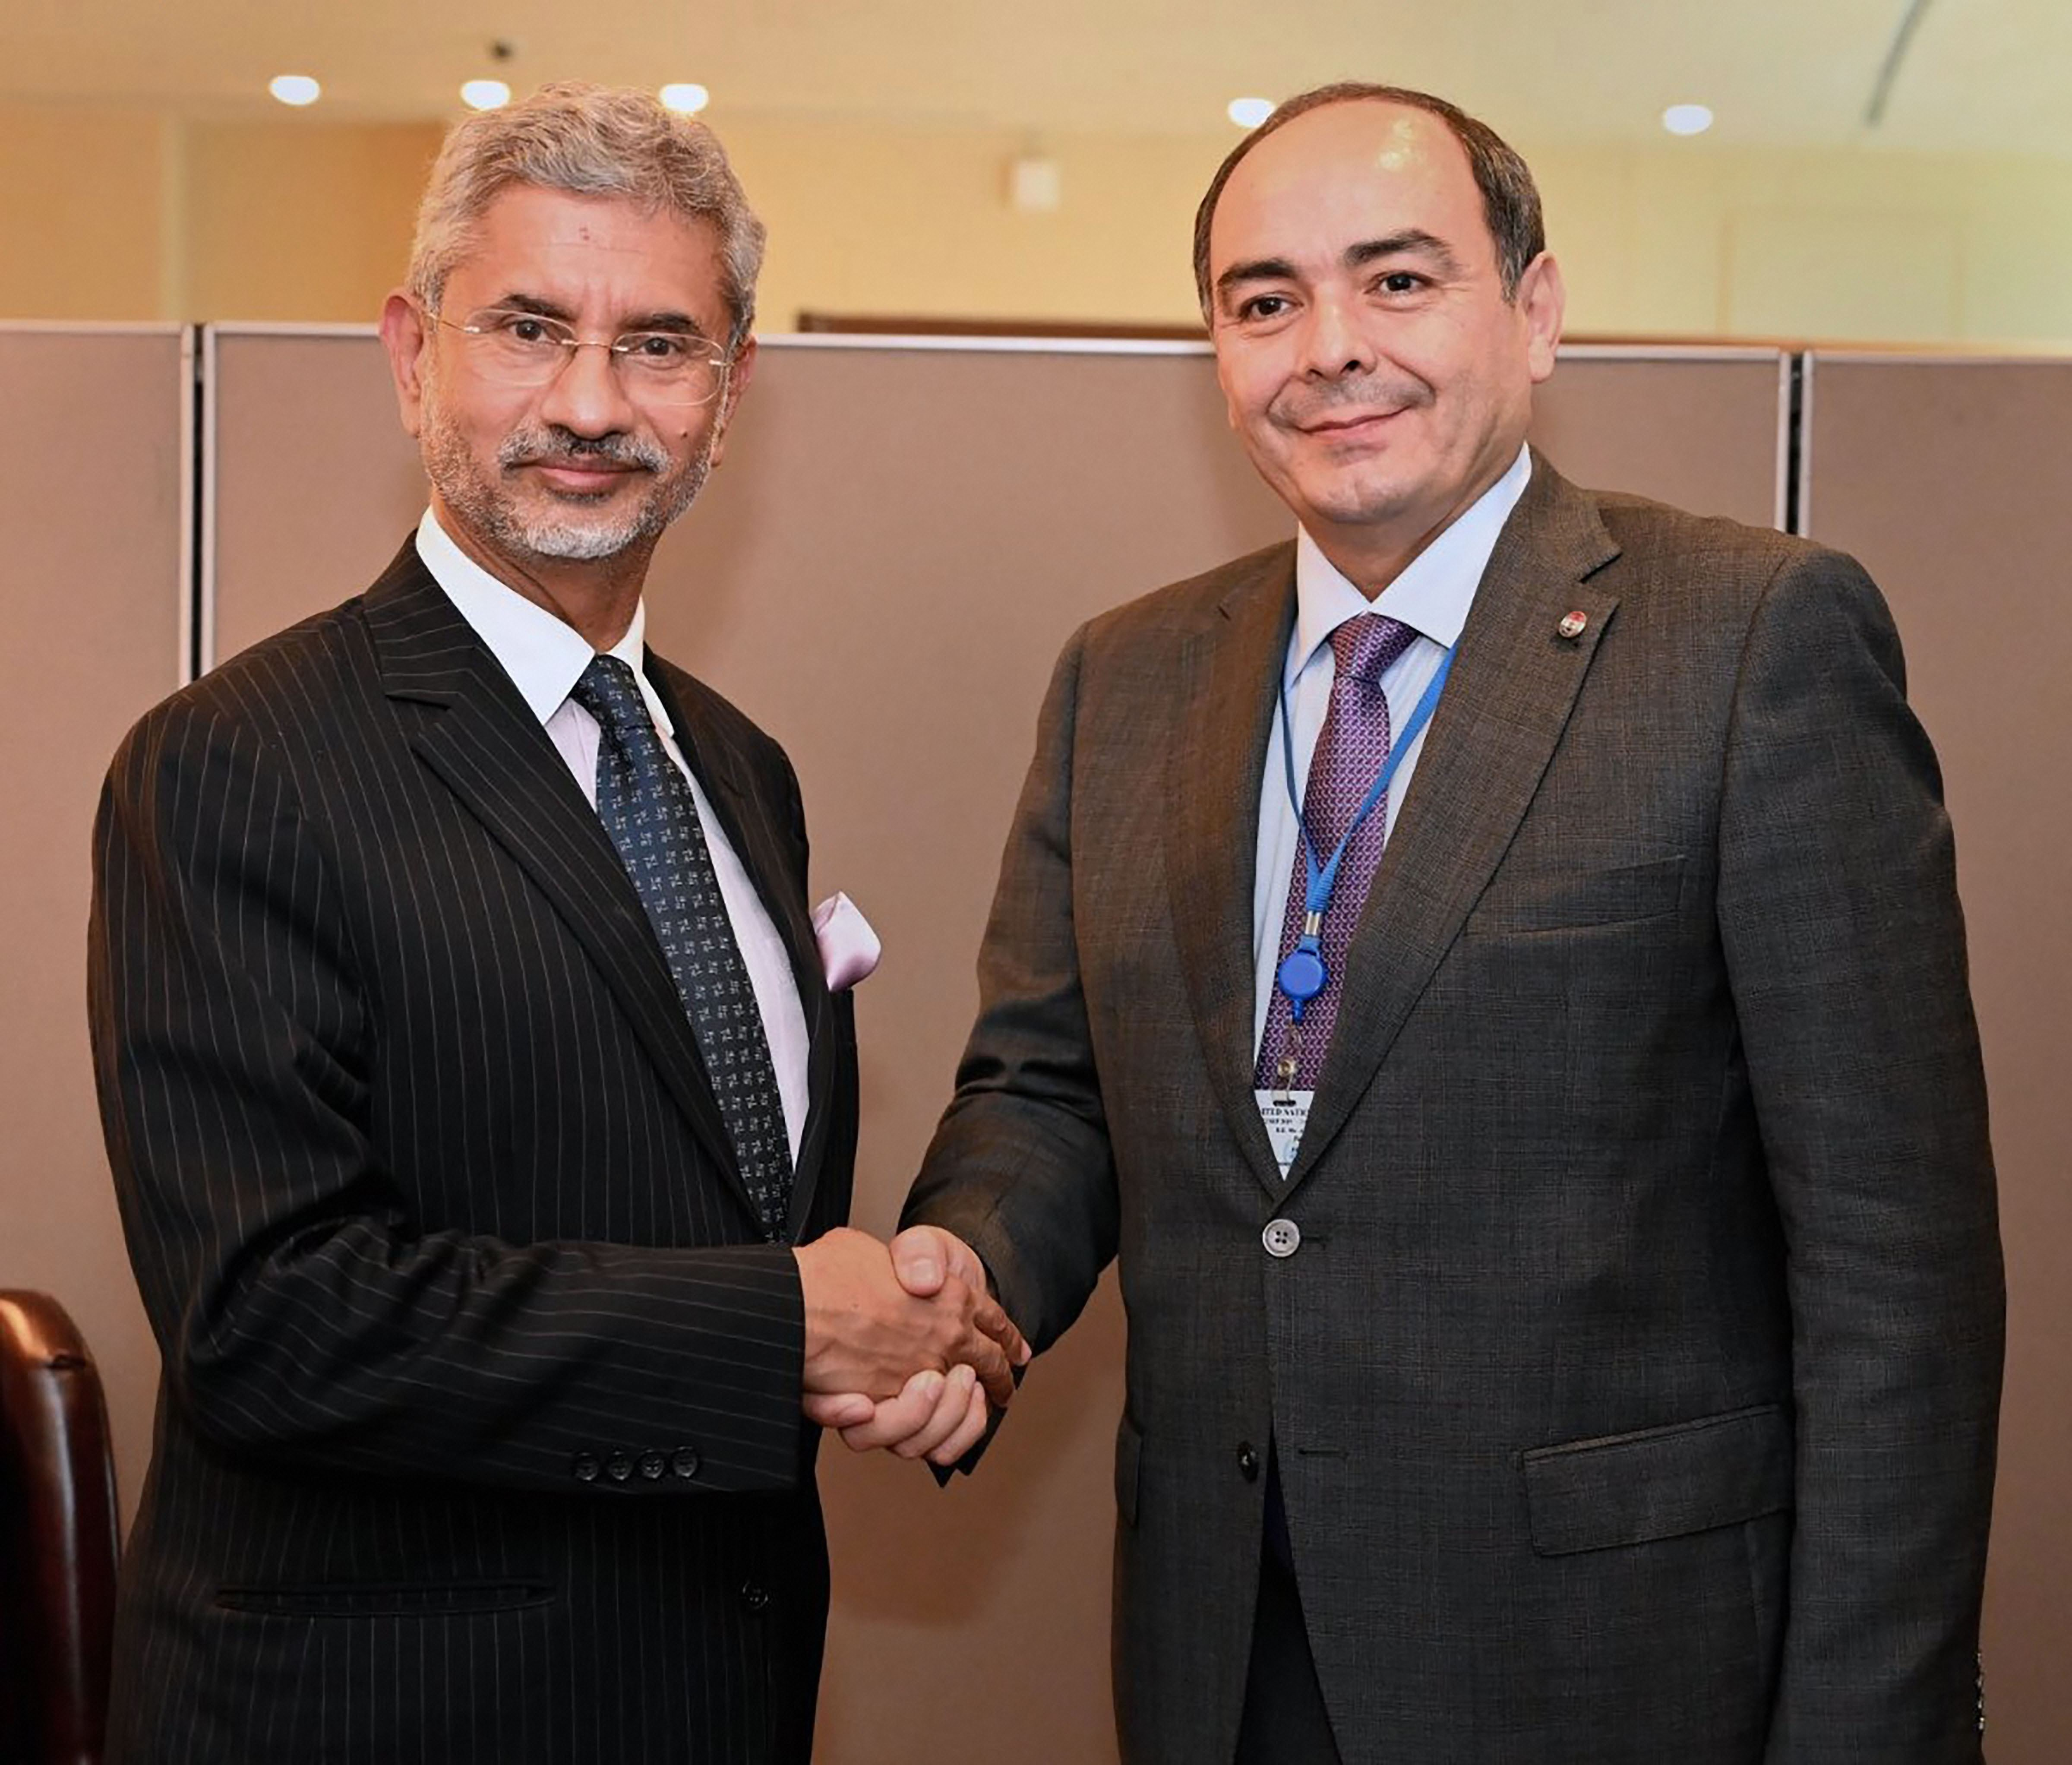 External affairs minister S. Jaishankar meets Paraguayan counterpart Antonio Rivas Palacios on the sidelines of the 74th UN General Assembly, in New York.